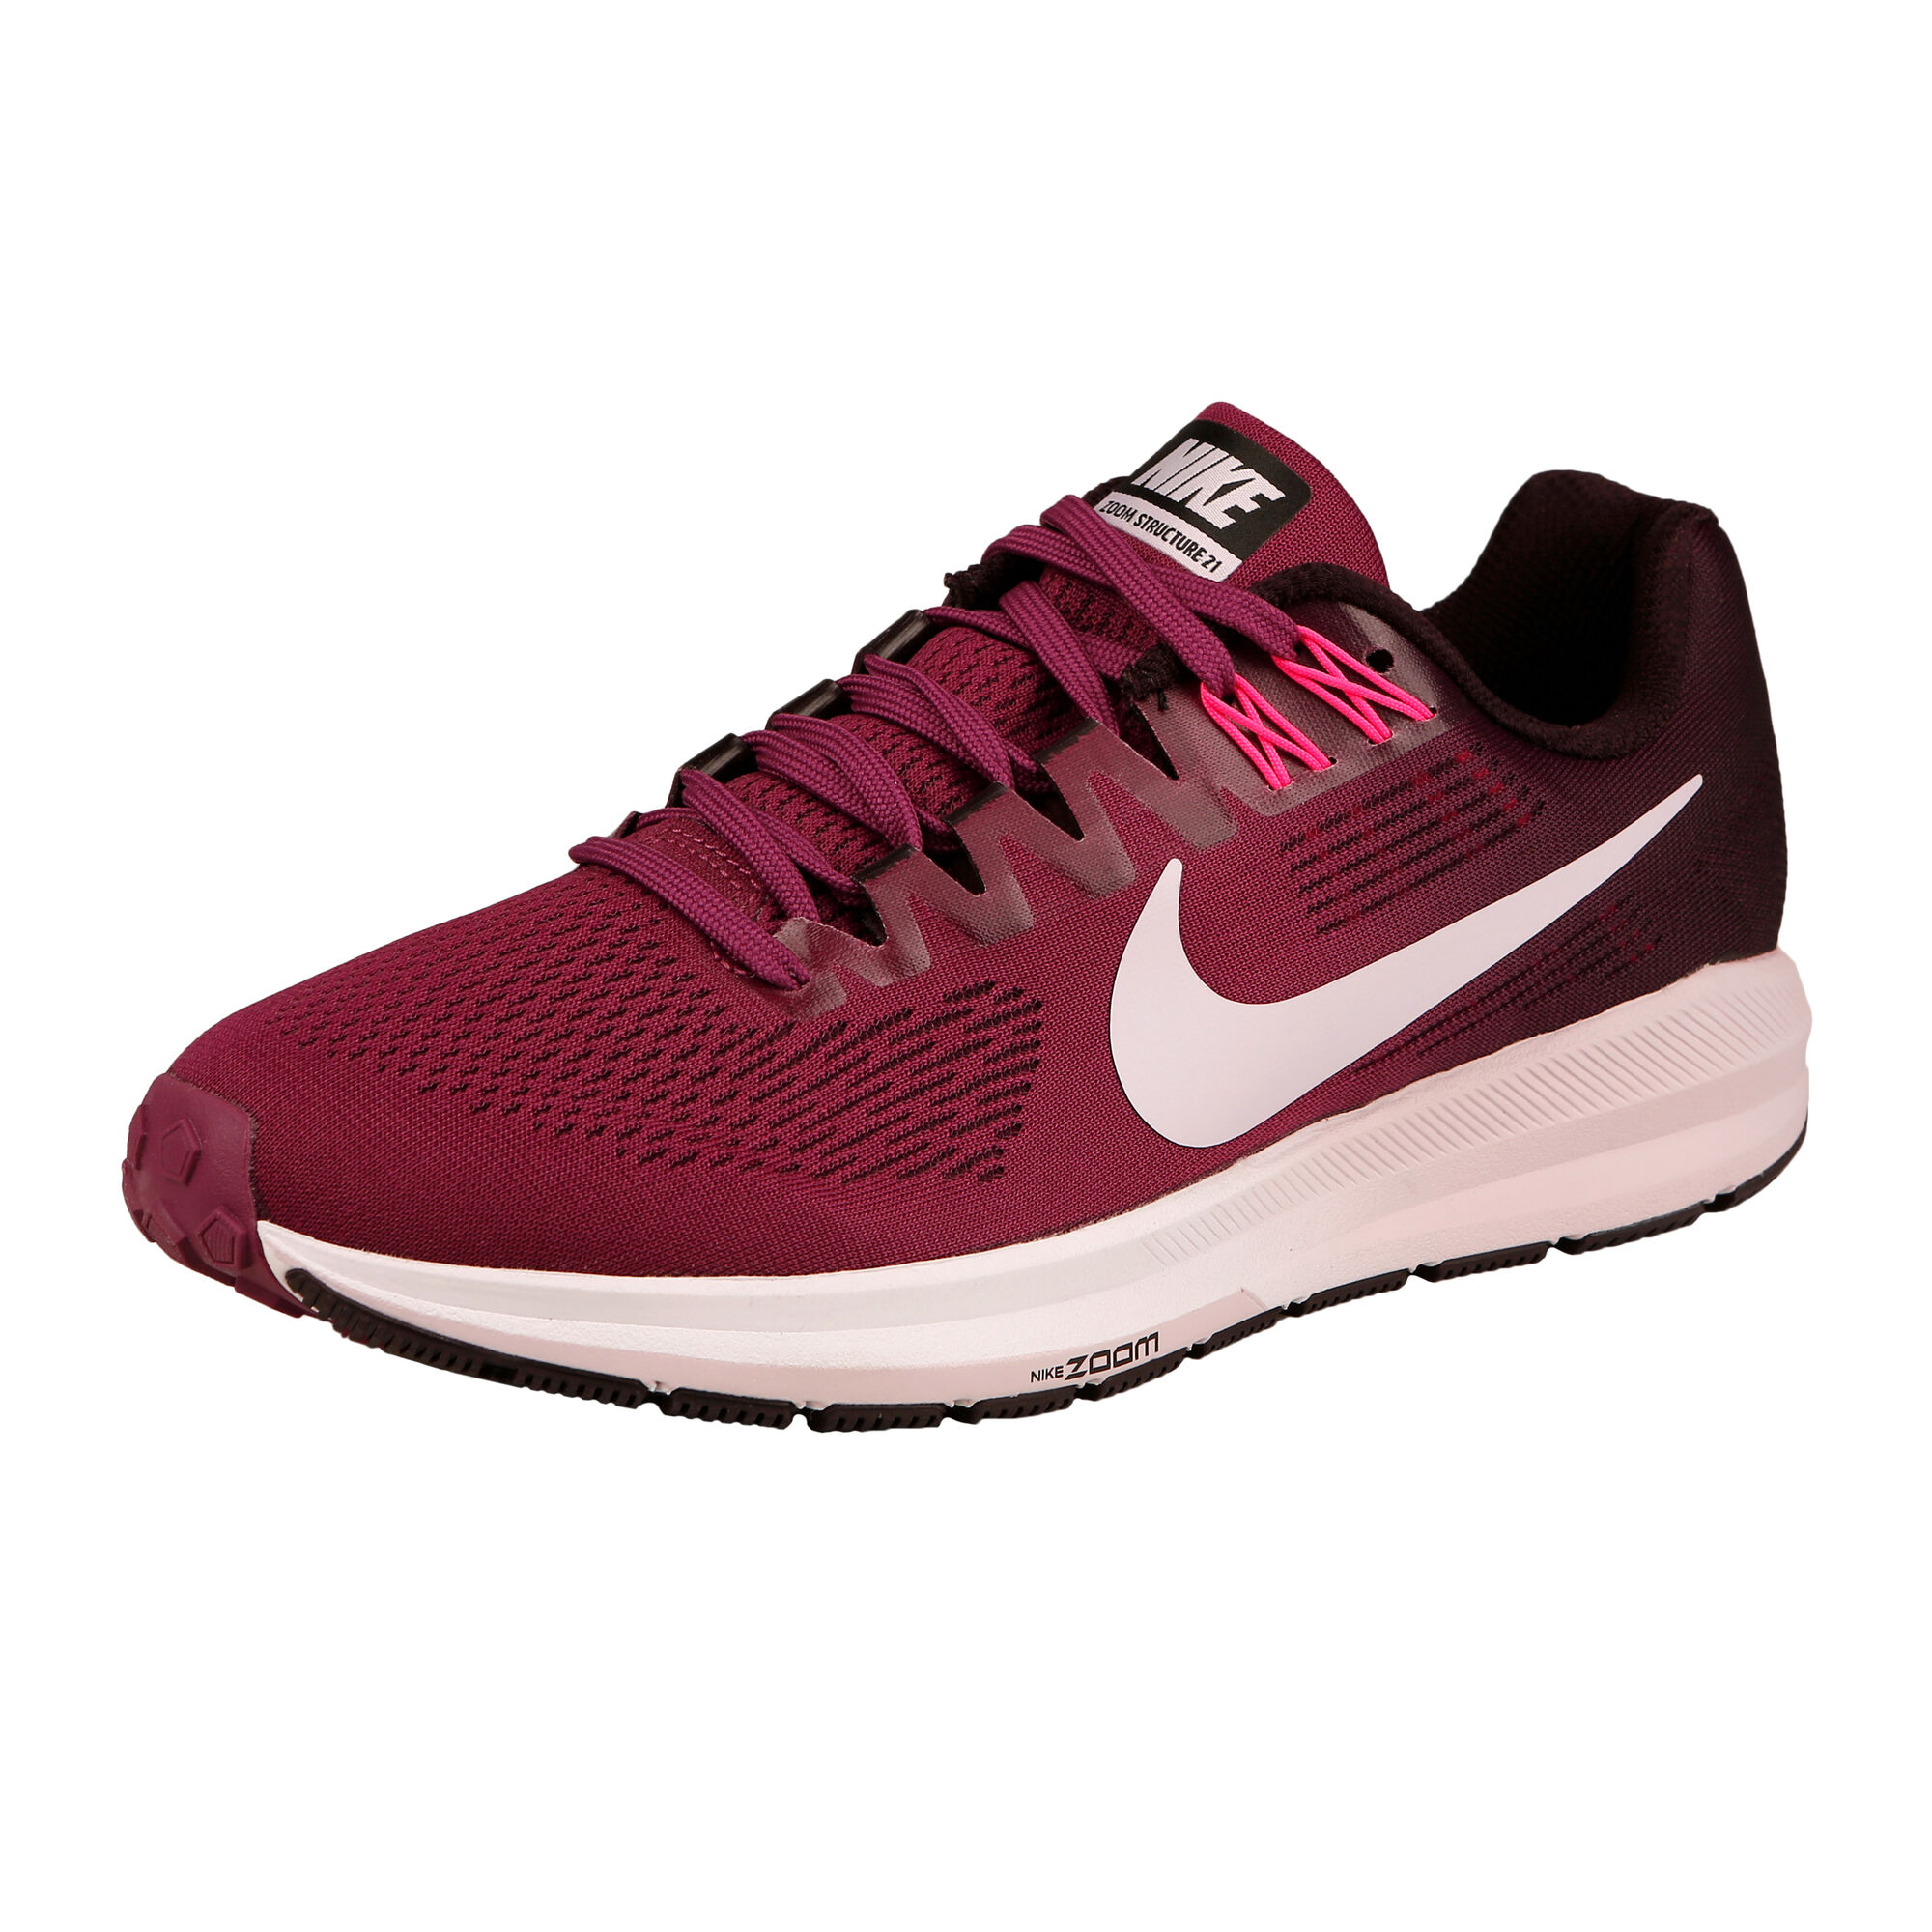 d31d03ae28c buy Nike Air Zoom Structure 21 Stability Running Shoe Women - Dark ...